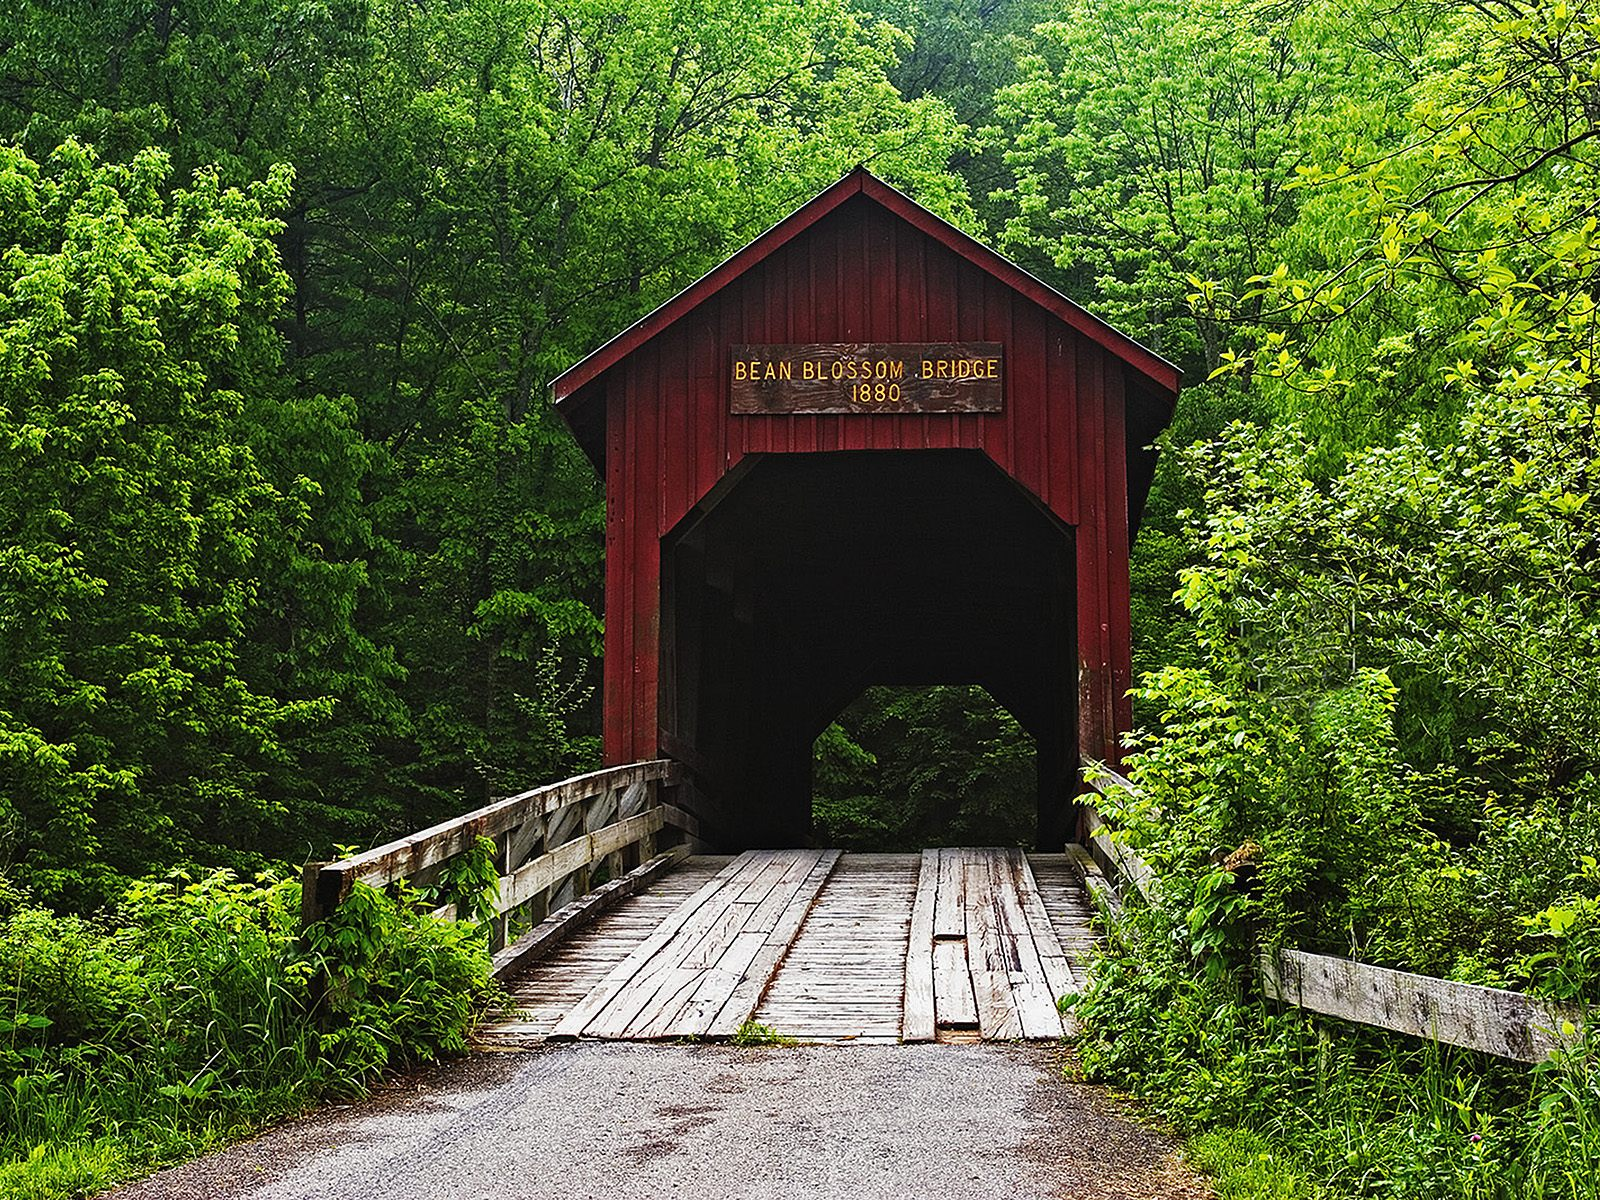 1000+ images about Covered Bridges on Pinterest.